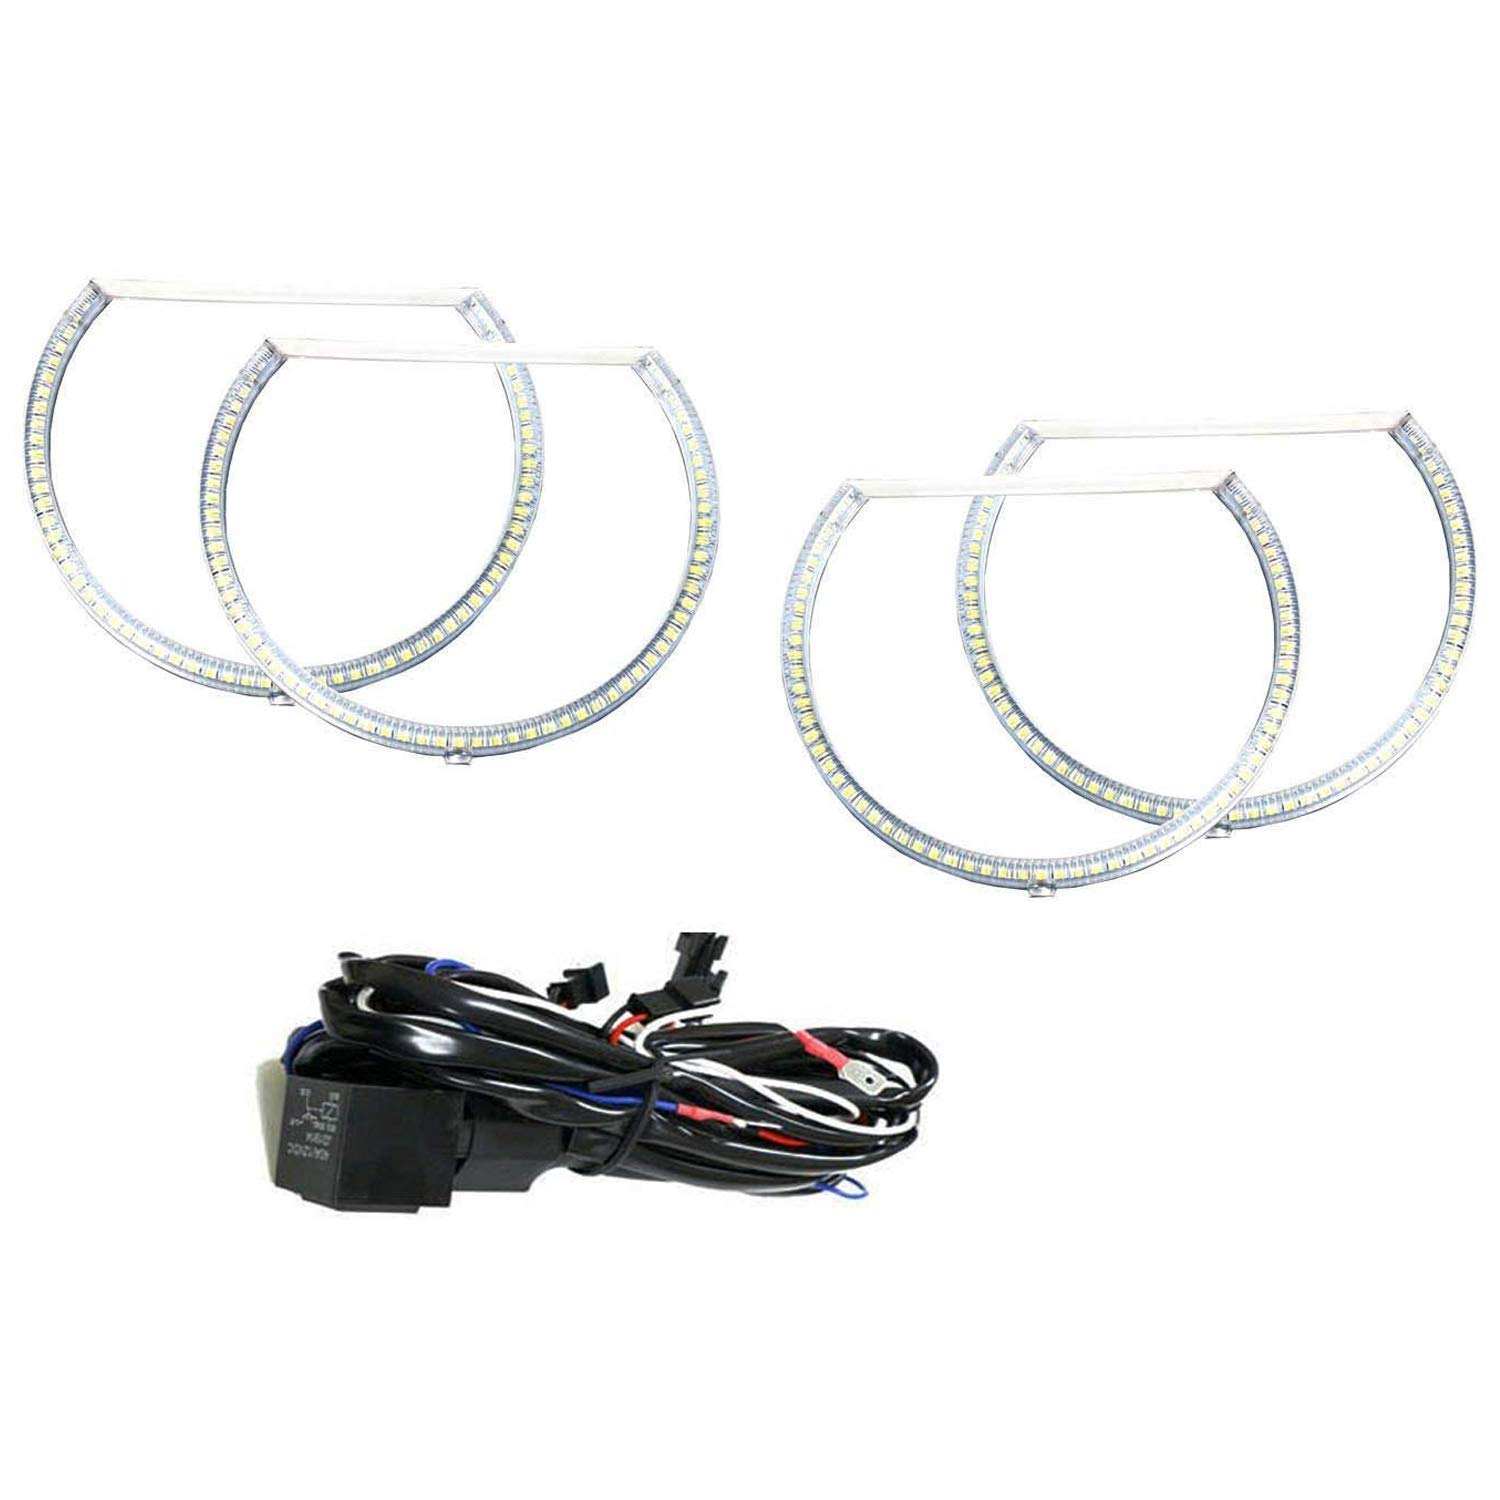 iJDMTOY Complete Set 4-Ring 252-SMD LED Angel Eye Halo Rings Kit w//Relay Harness For 2008-2014 Dodge Challenger Headlight Retrofit Xenon White